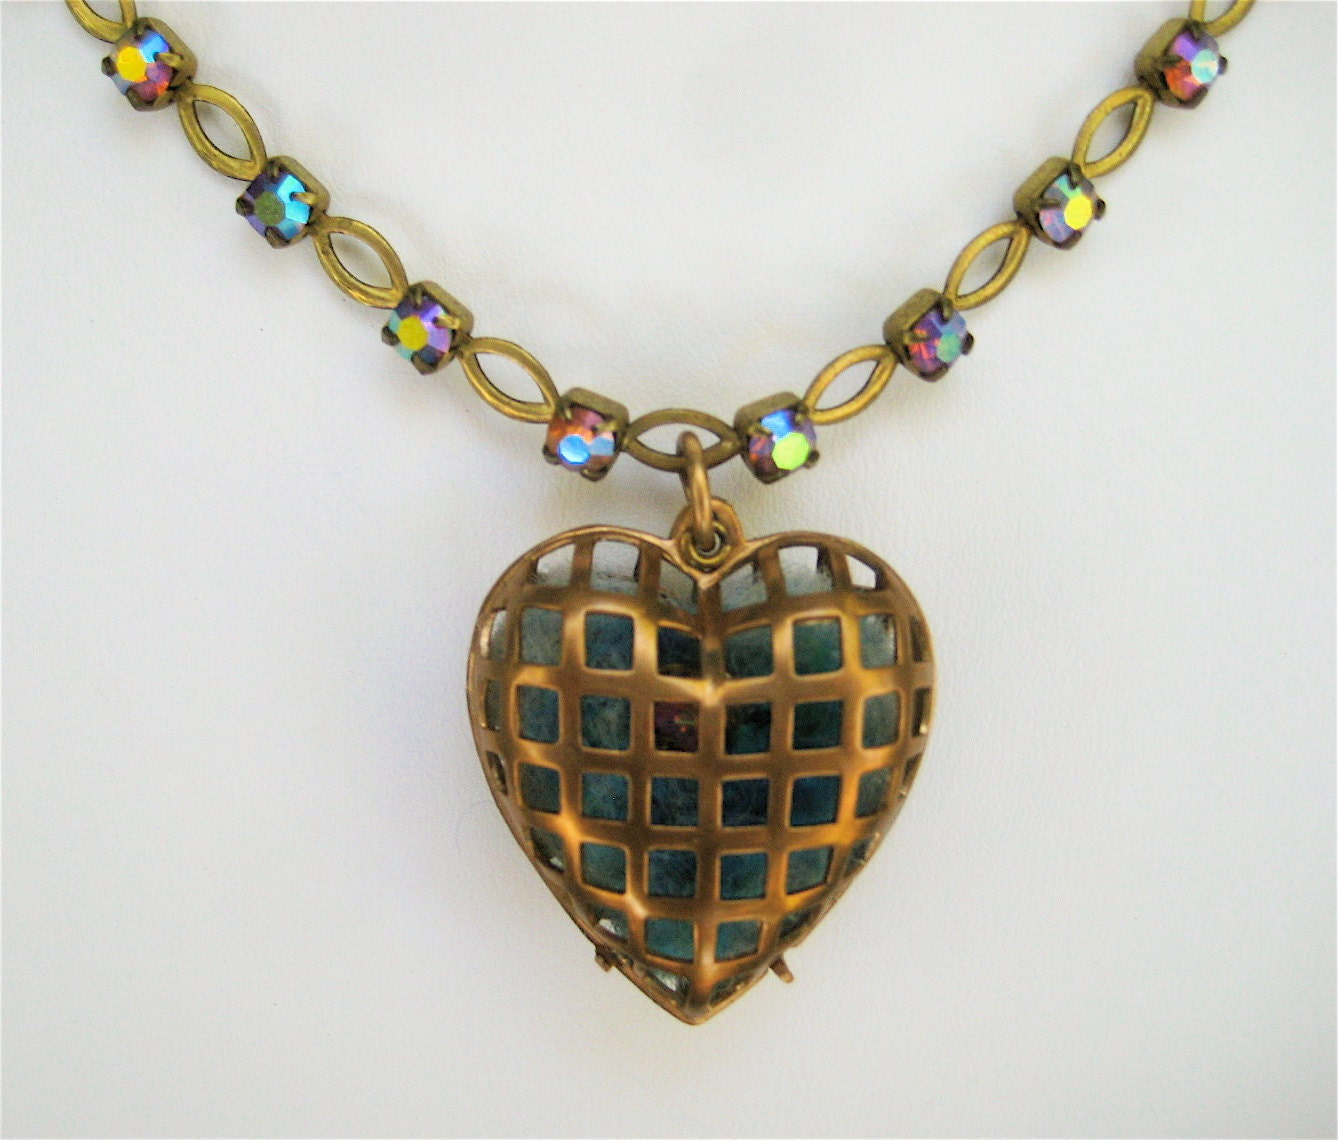 Brass Heart Necklace Cage Heart with Aqua Needle Felt Heart on Vintage ABAqua Rhinestone Chain Choker Length Lots of Sparkle - CatchingWaves